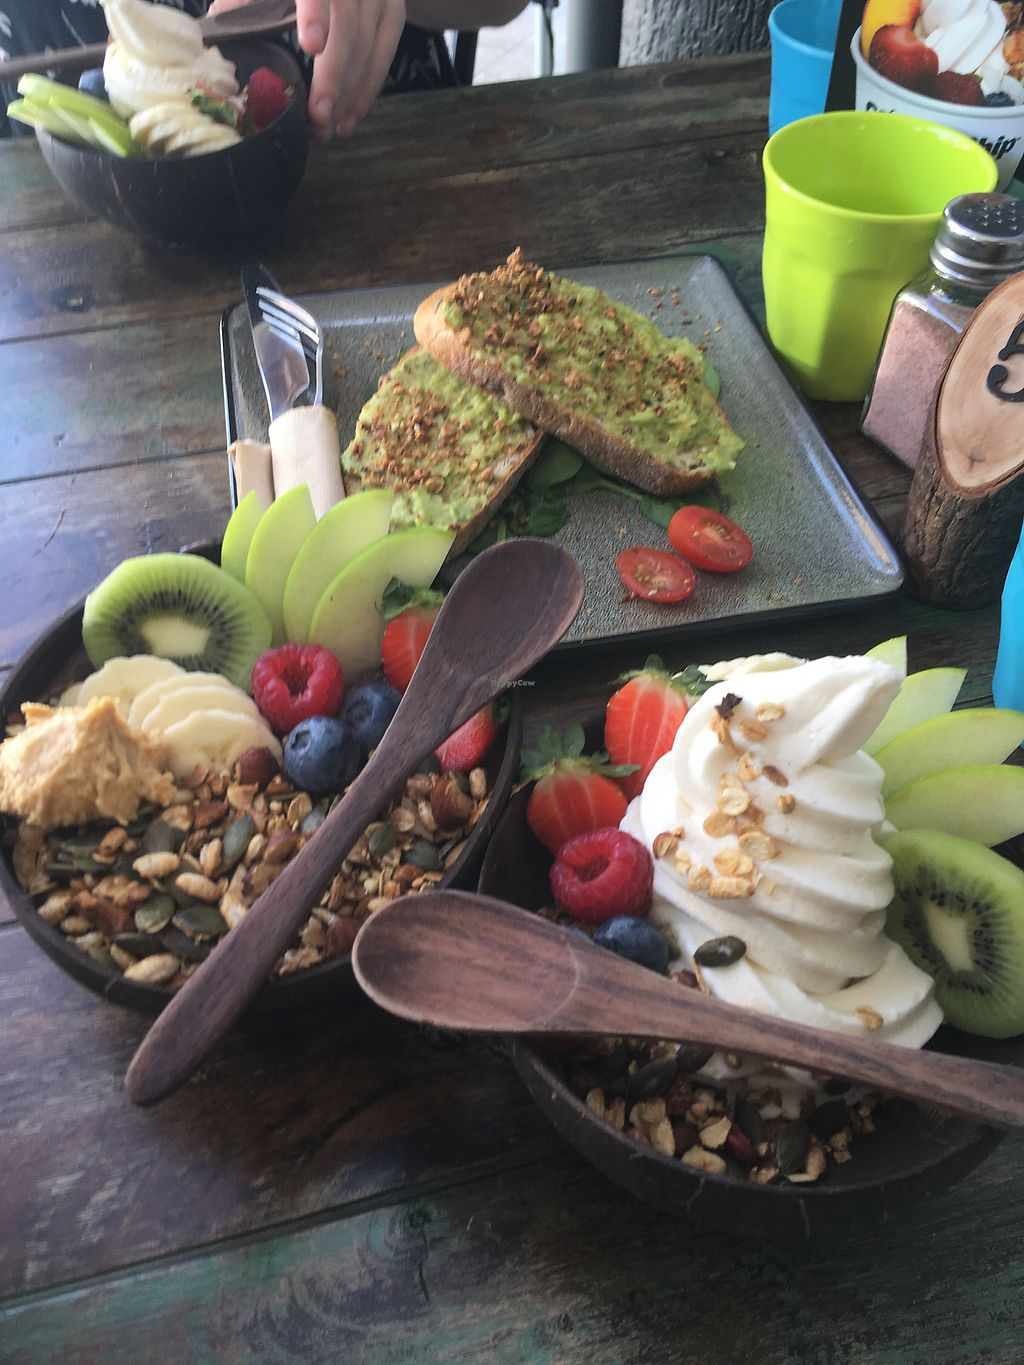 """Photo of Clean Eats and Healthy Treats  by <a href=""""/members/profile/EmmaDimento"""">EmmaDimento</a> <br/>Açai bowl, coco whip and avo toast <br/> February 17, 2018  - <a href='/contact/abuse/image/110388/360178'>Report</a>"""